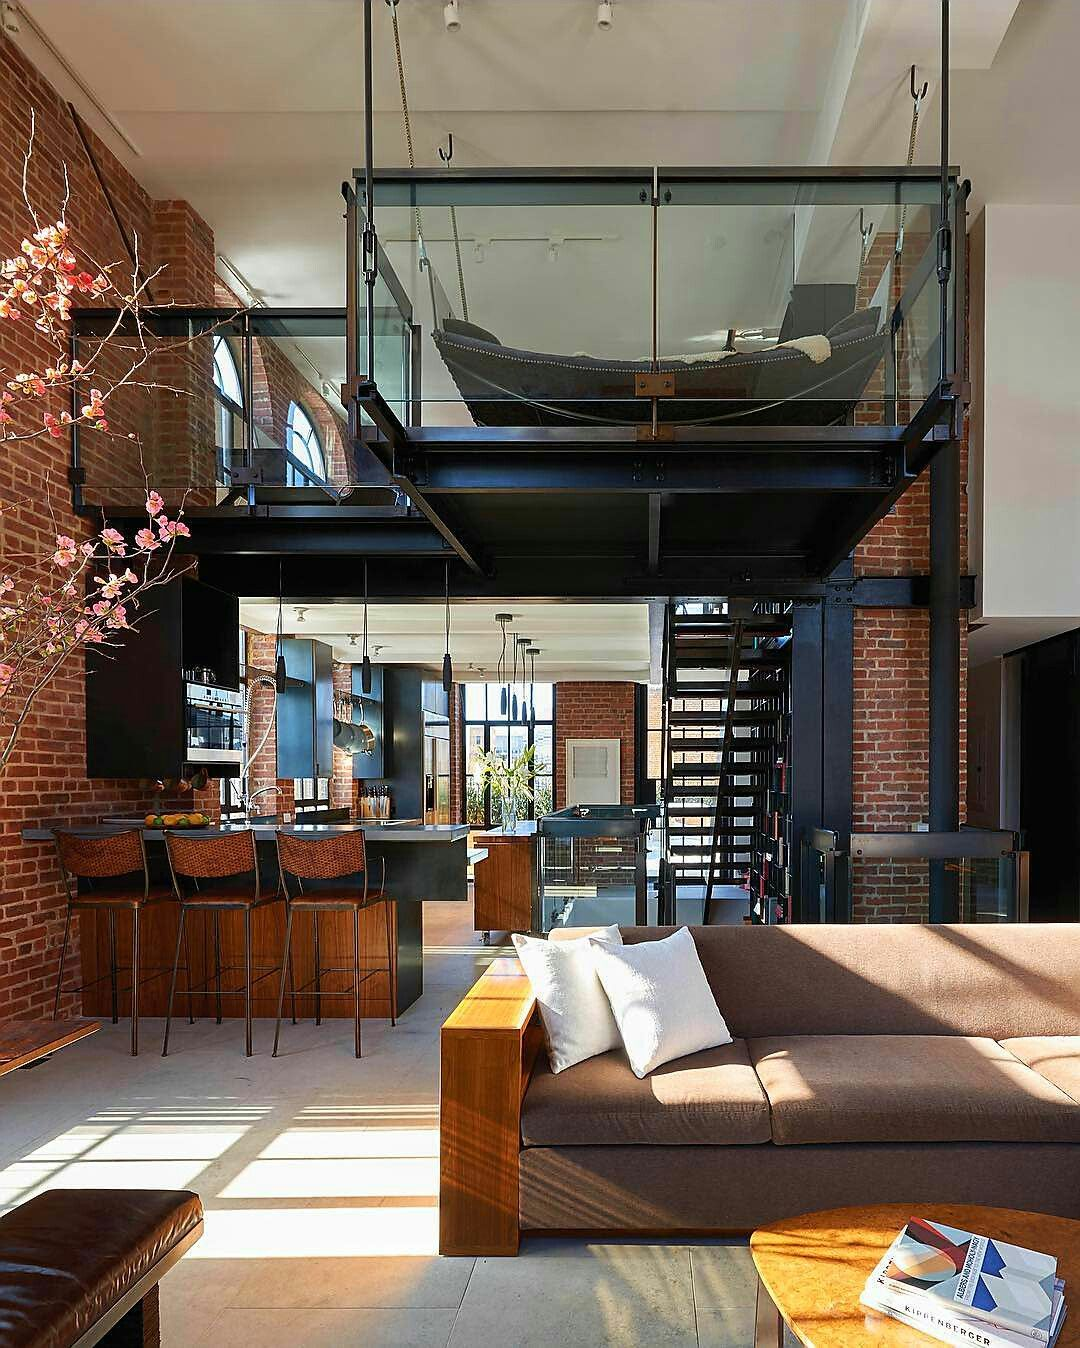 Mezzanine loft bedroom ideas  houseofvdm love  Dream house  Pinterest  Lofts Mezzanine and